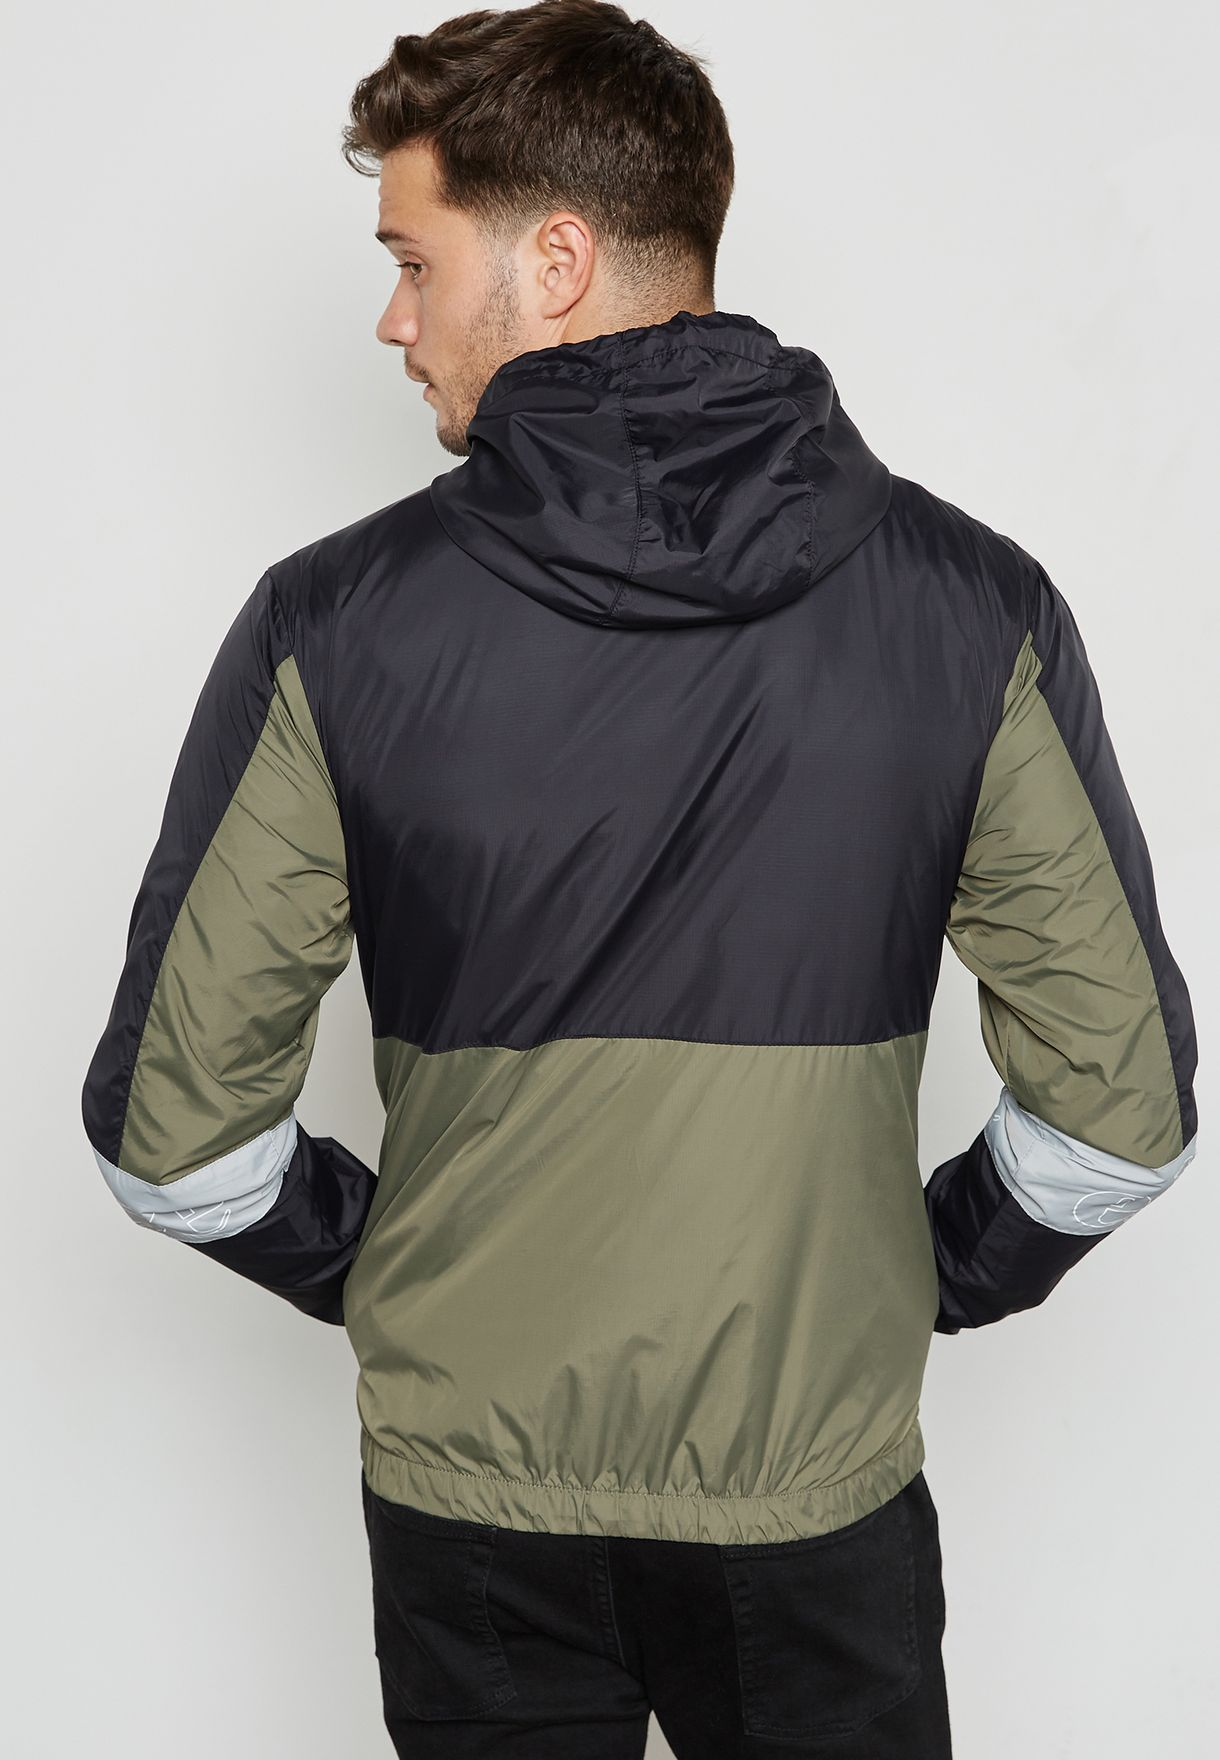 Tonazzi Badged Jacket